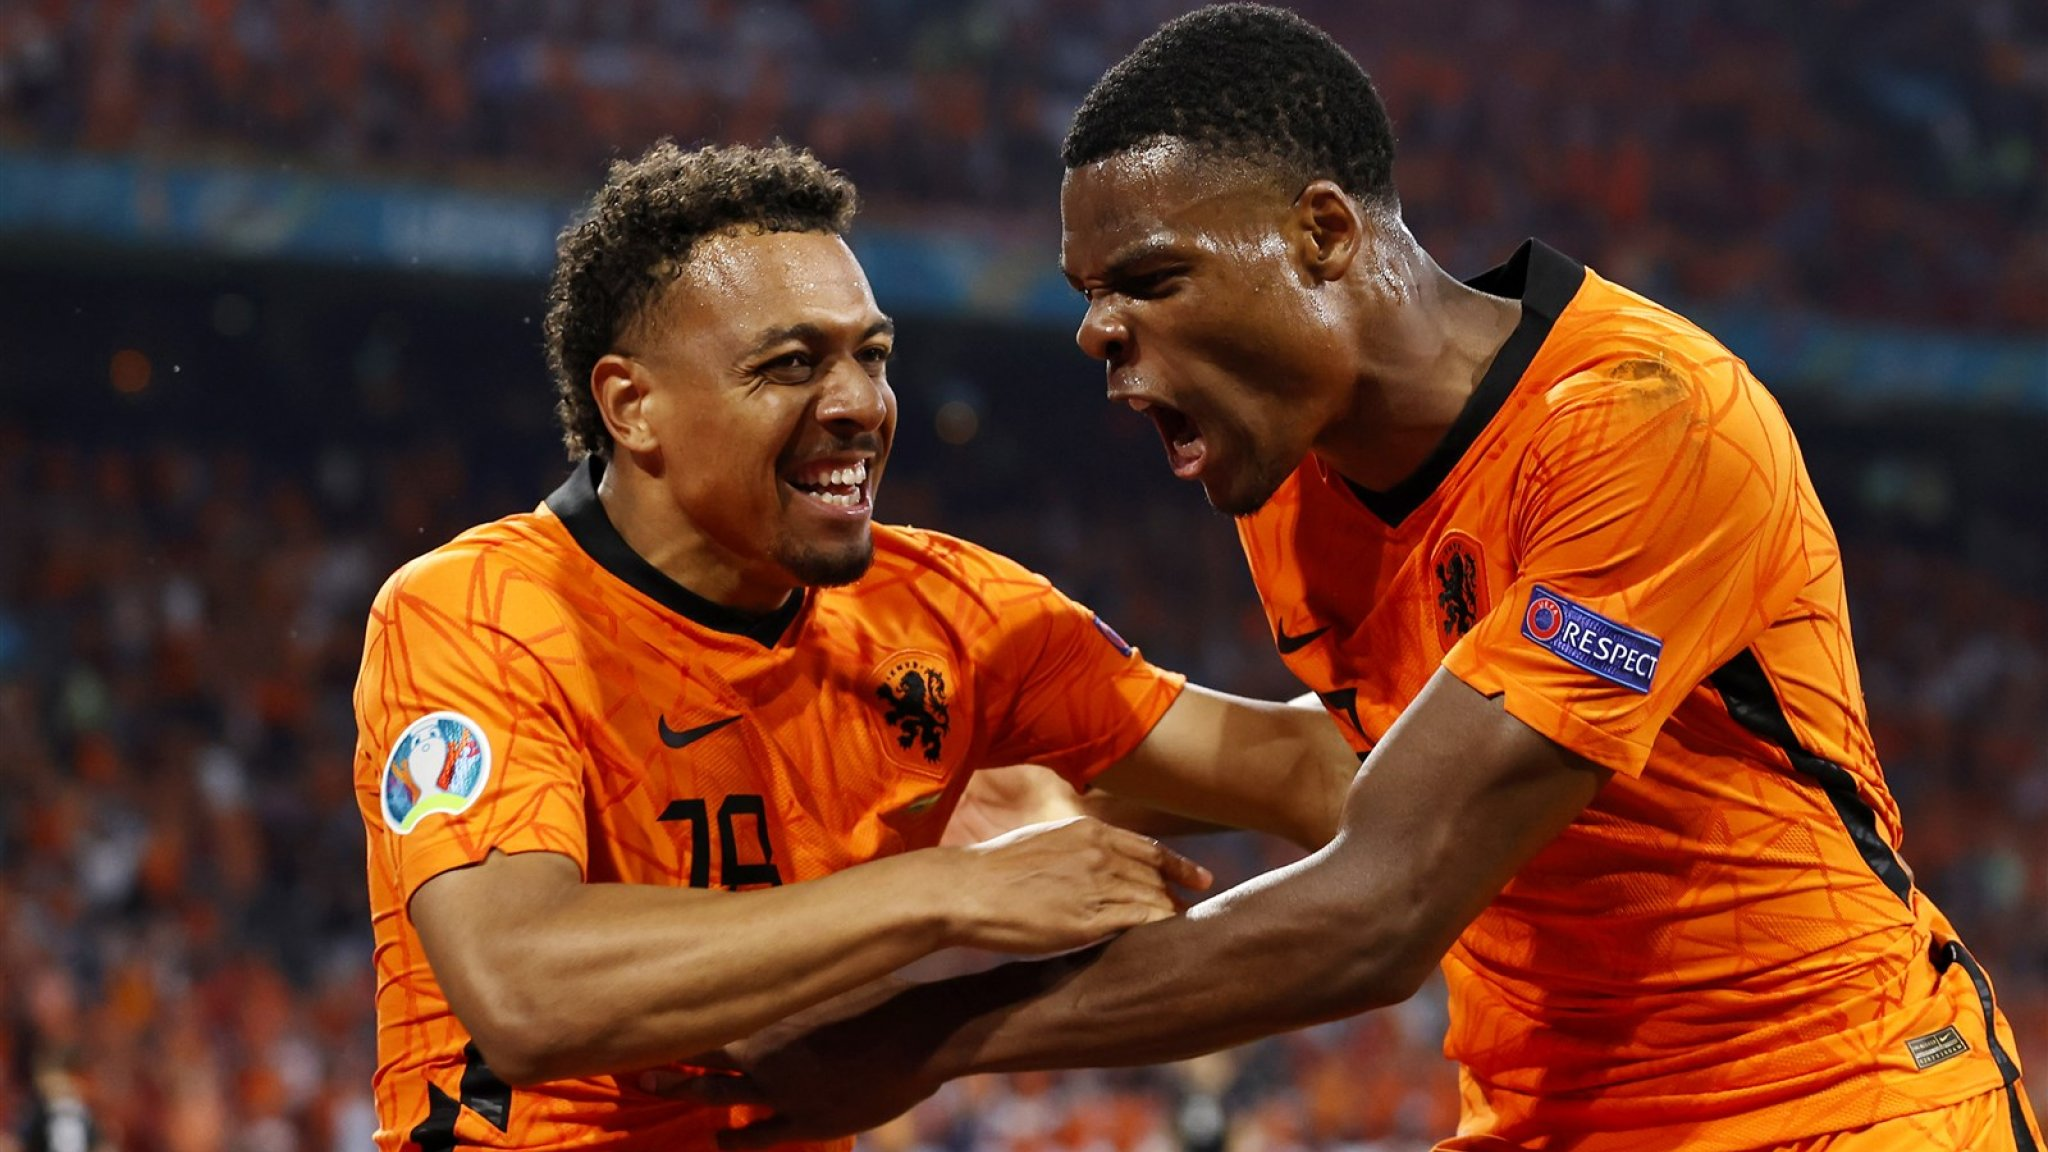 And that's two!  Orange is stronger than Austria, as the group won the eighth final